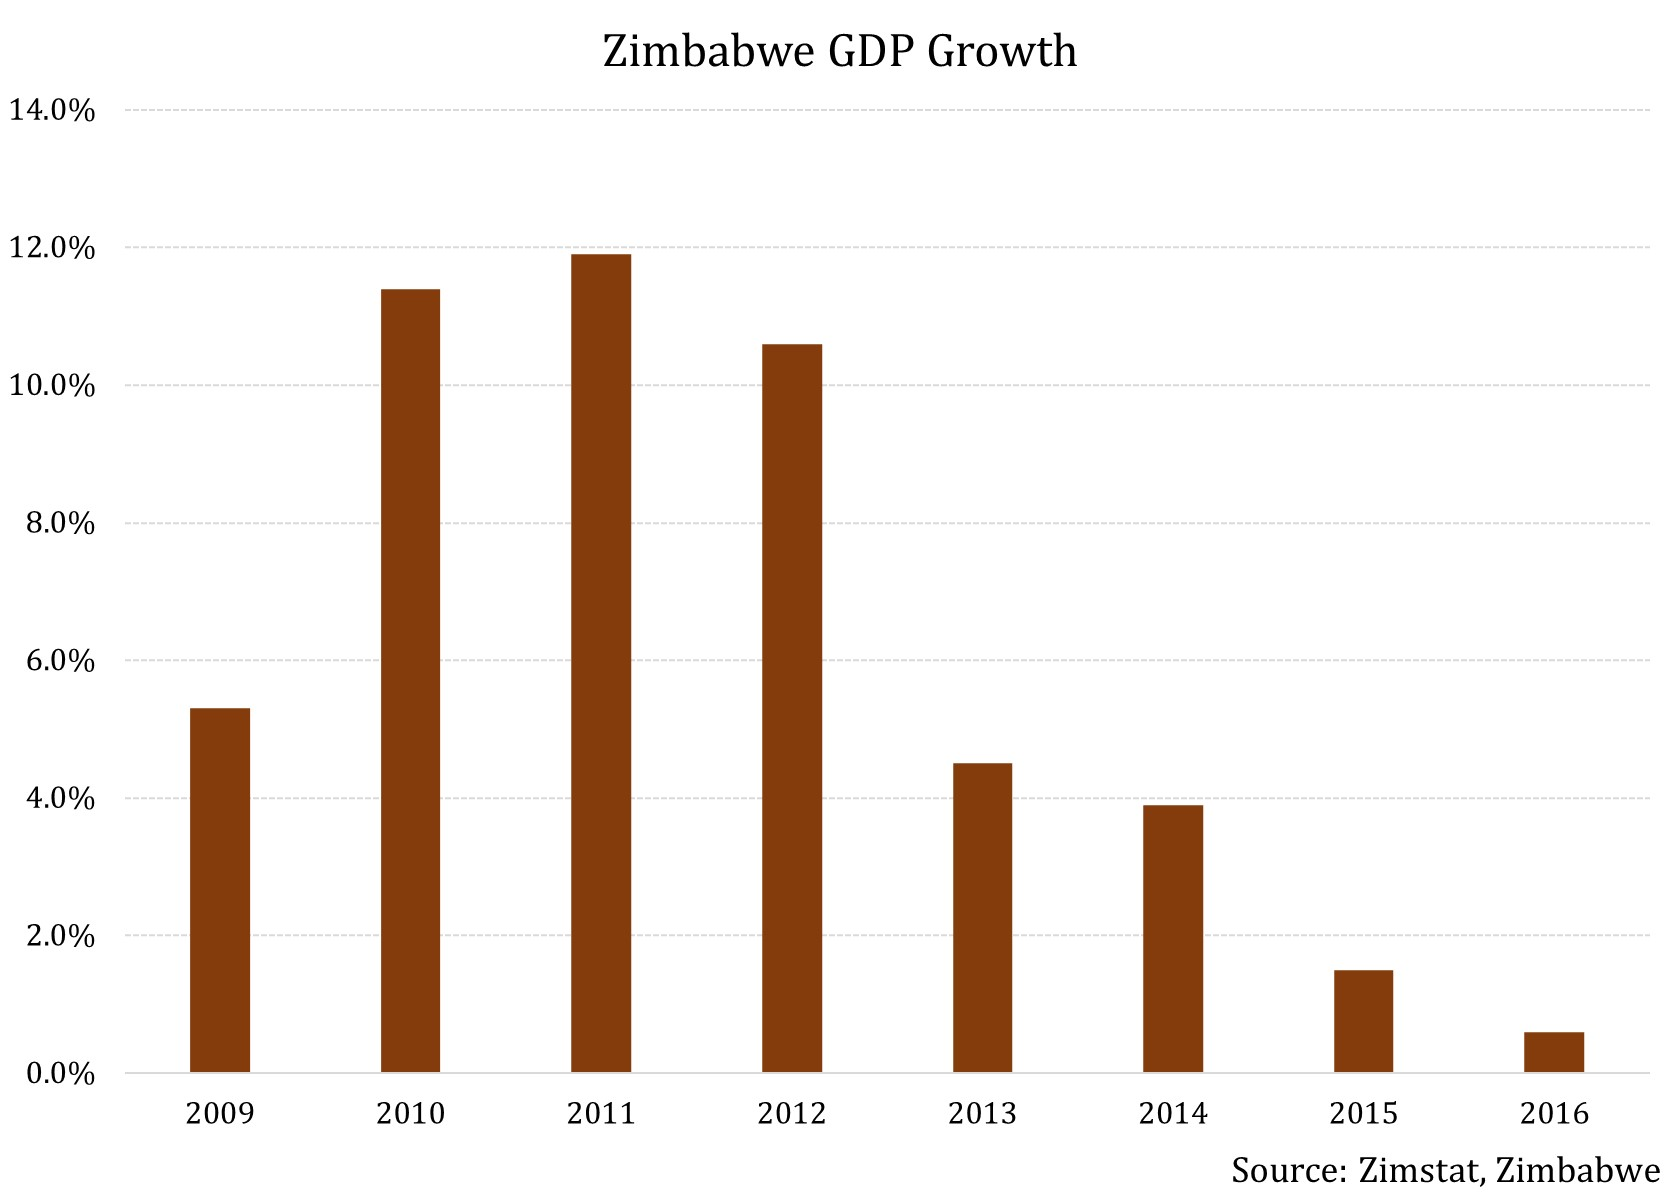 an analysis of the economic development in zimbabwe This paper examines the impact of dollarization on the performance of the  zimbabwean economy from 2003 to 2014 using an interrupted time-series  analysis.